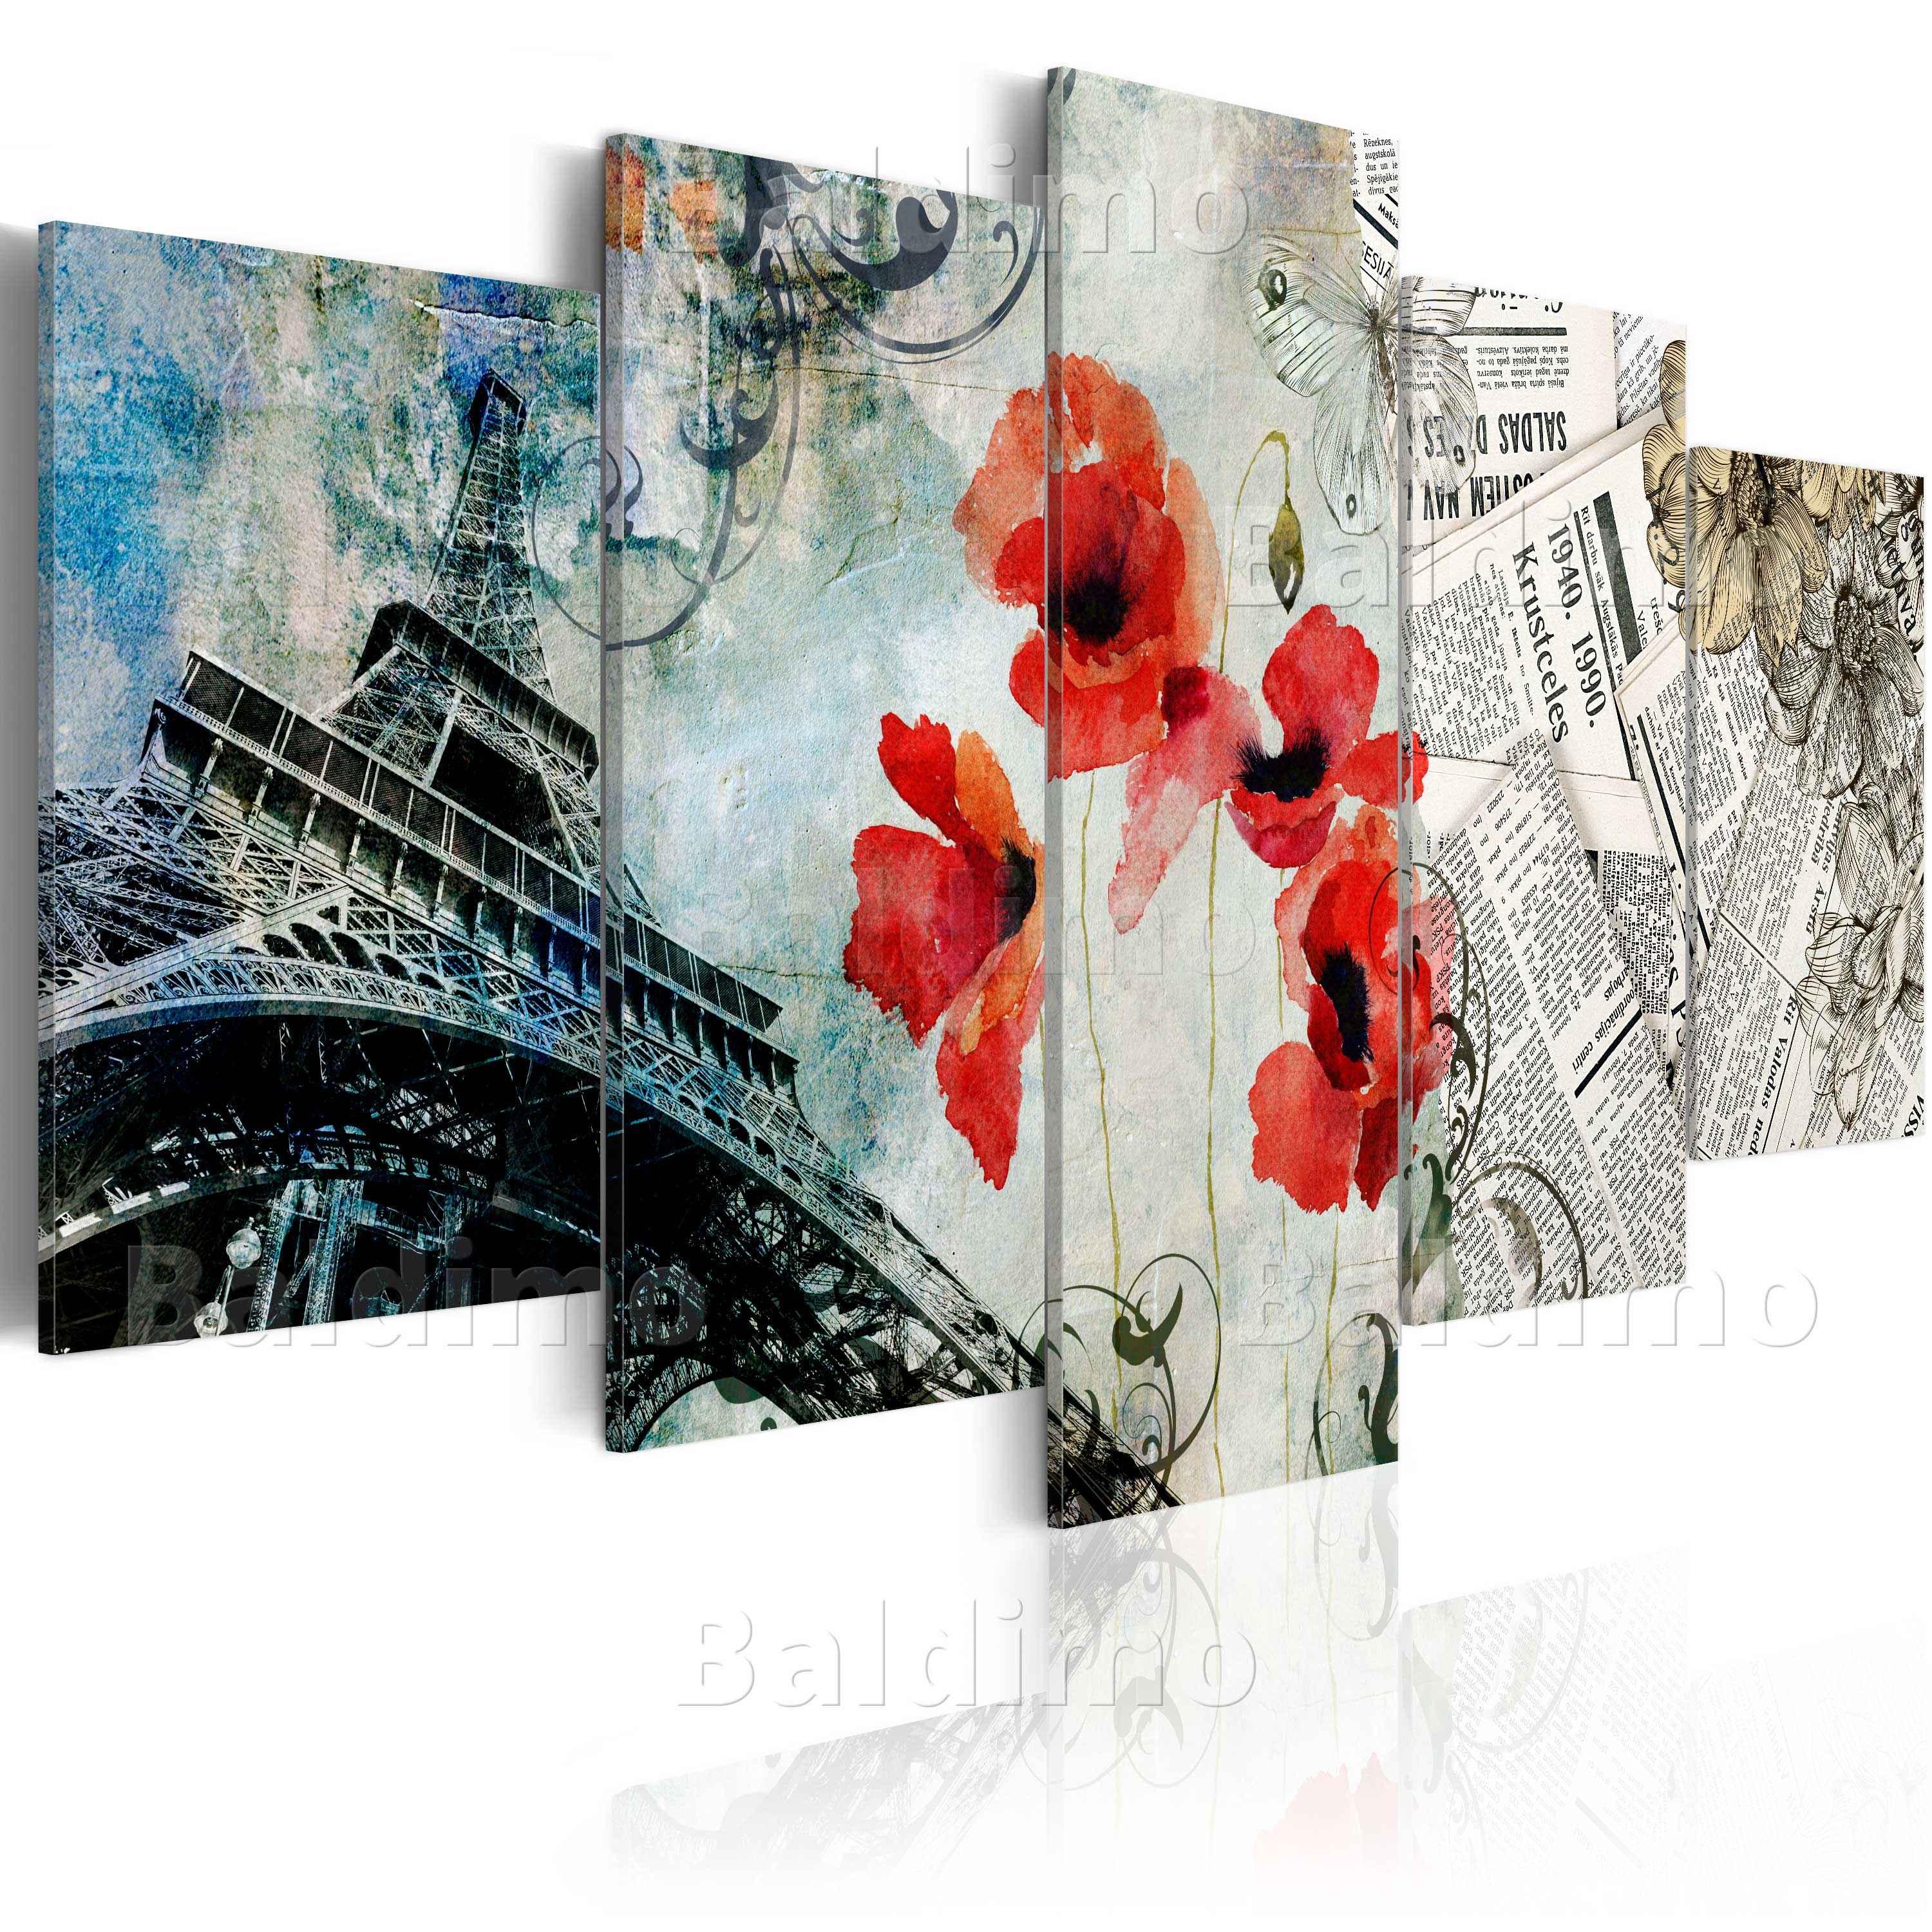 LARGE CANVAS WALL ART PRINT + IMAGE + PICTURE + PHOTO FLOWER 020115-64